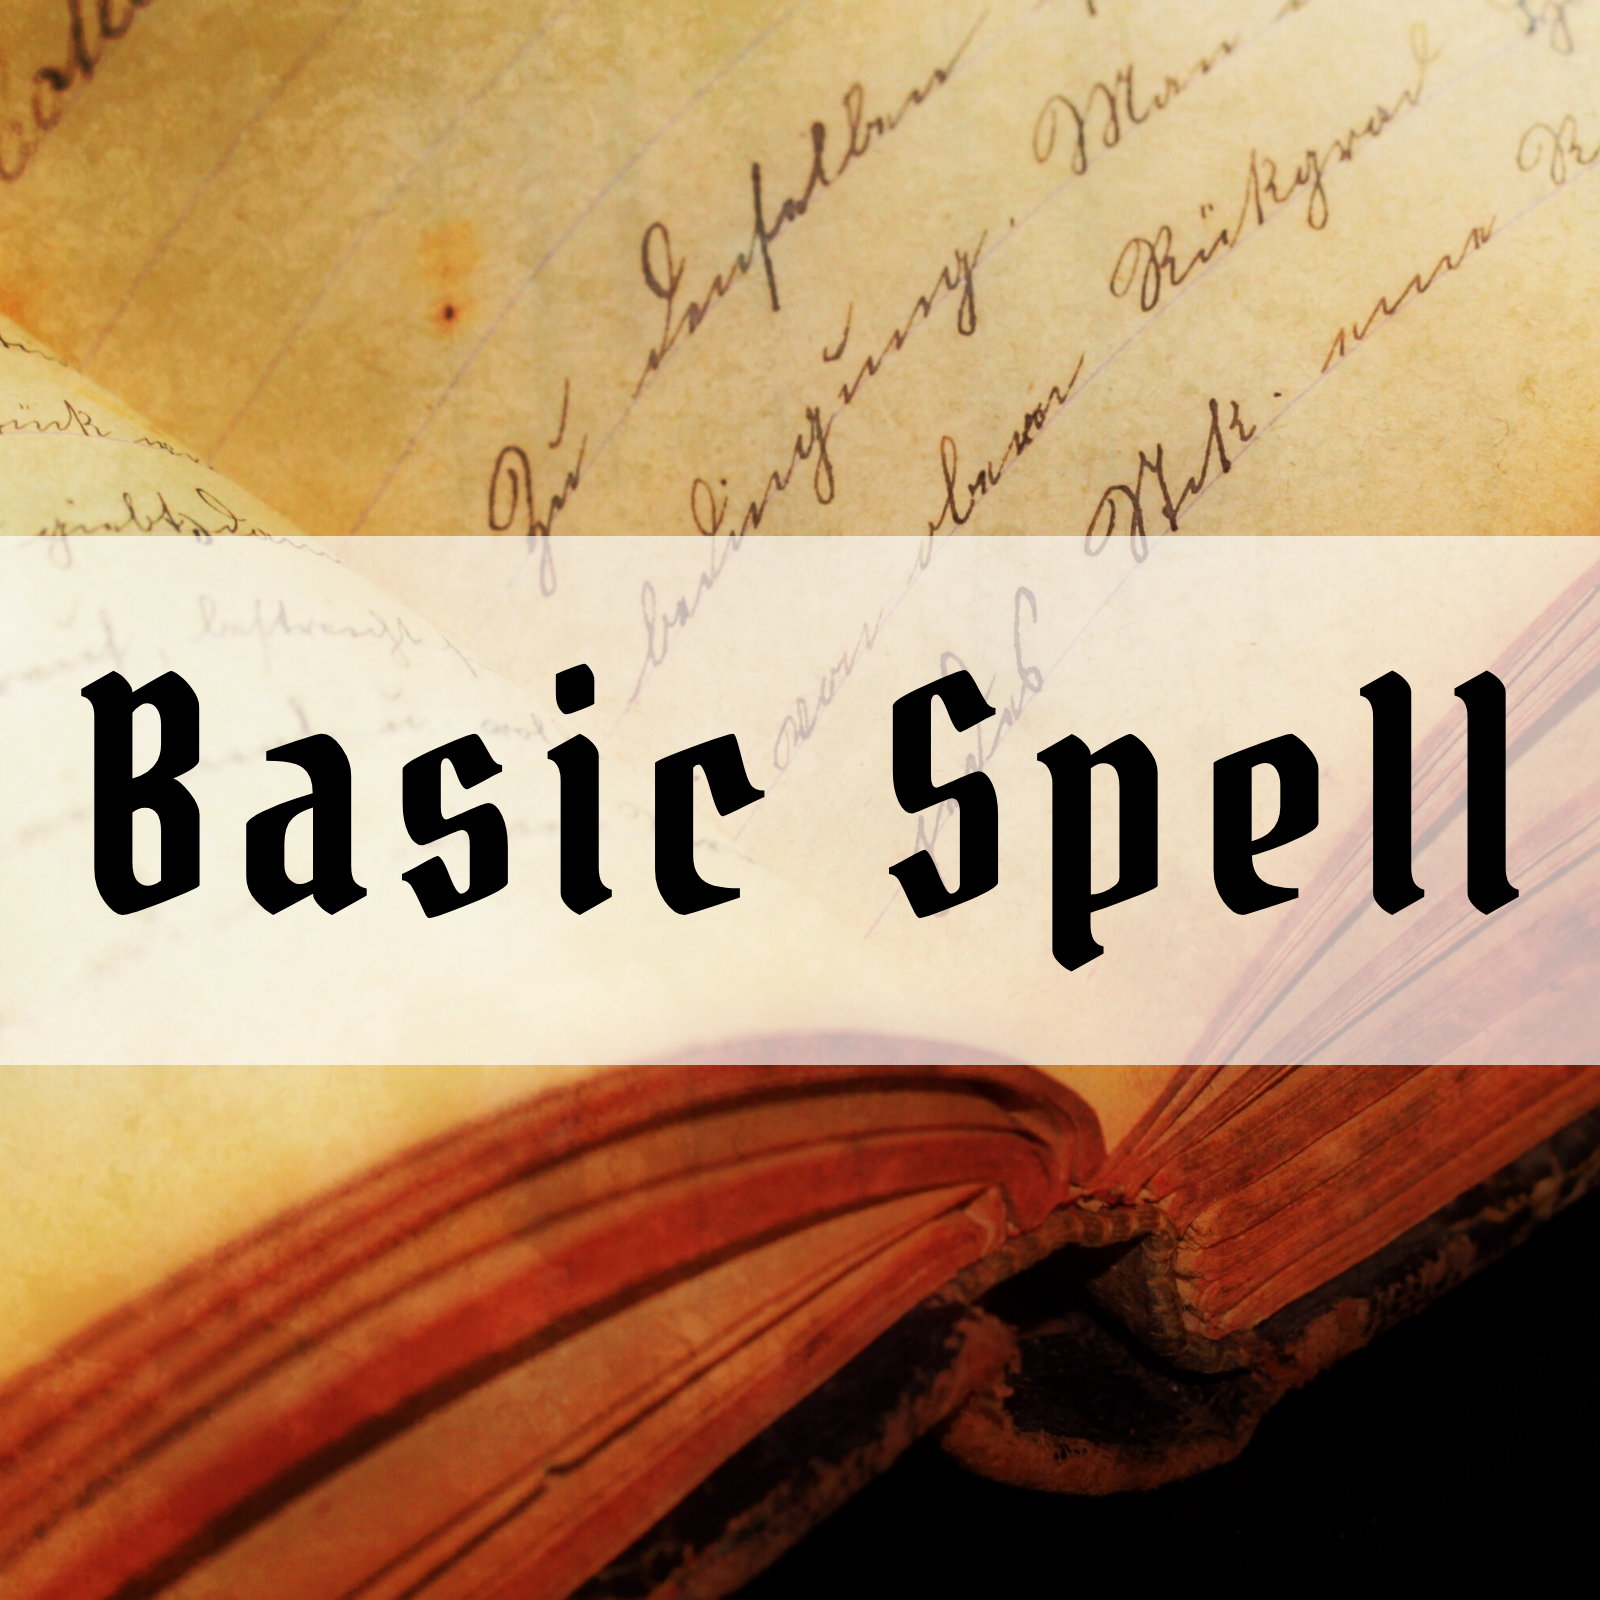 How to enchant jewelry? Simple Spell – Baby Witch Project